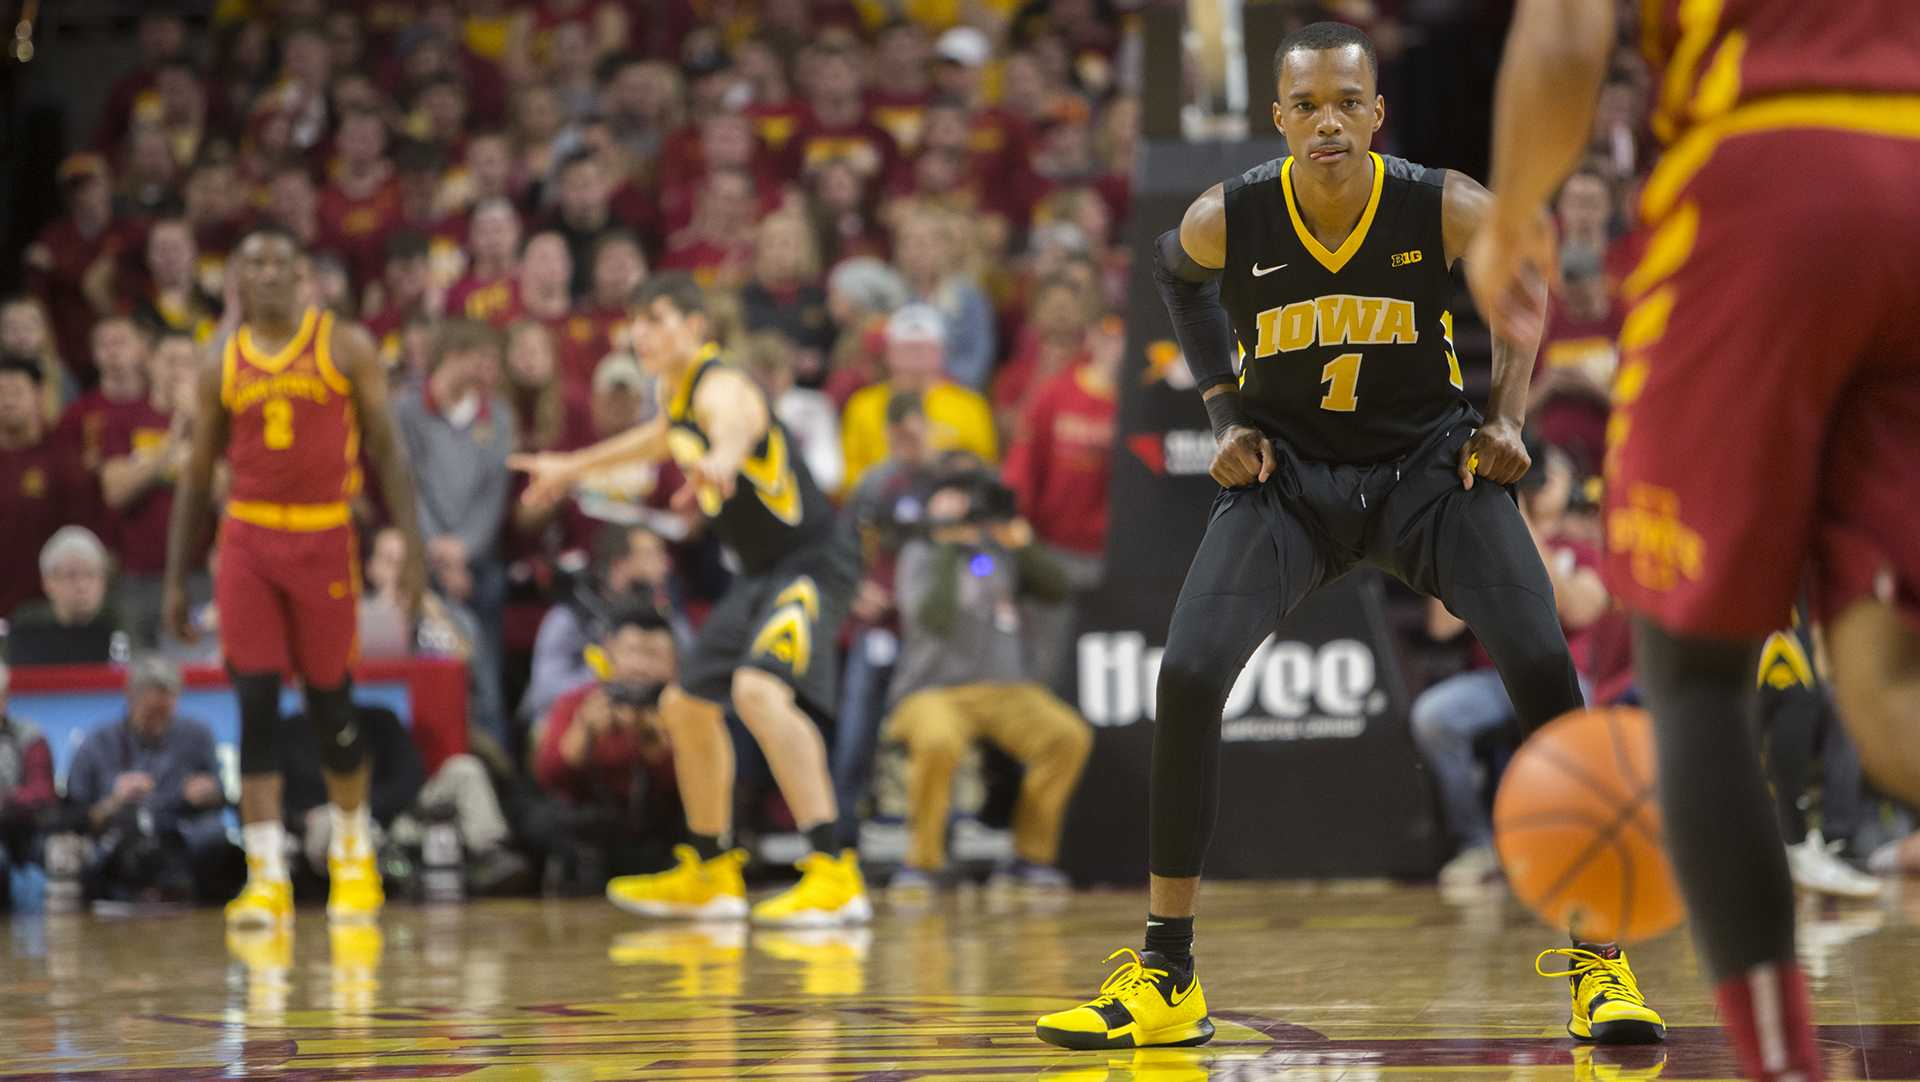 Iowa guard Maishe Dailey eyes an Iowa State player during the Iowa Corn CyHawk Series men's basketball game at Hilton Coliseum in Ames on Thursday, Dec. 7, 2017. The Cyclones defeated the Hawkeyes, 84-78. (Lily Smith/The Daily Iowan)